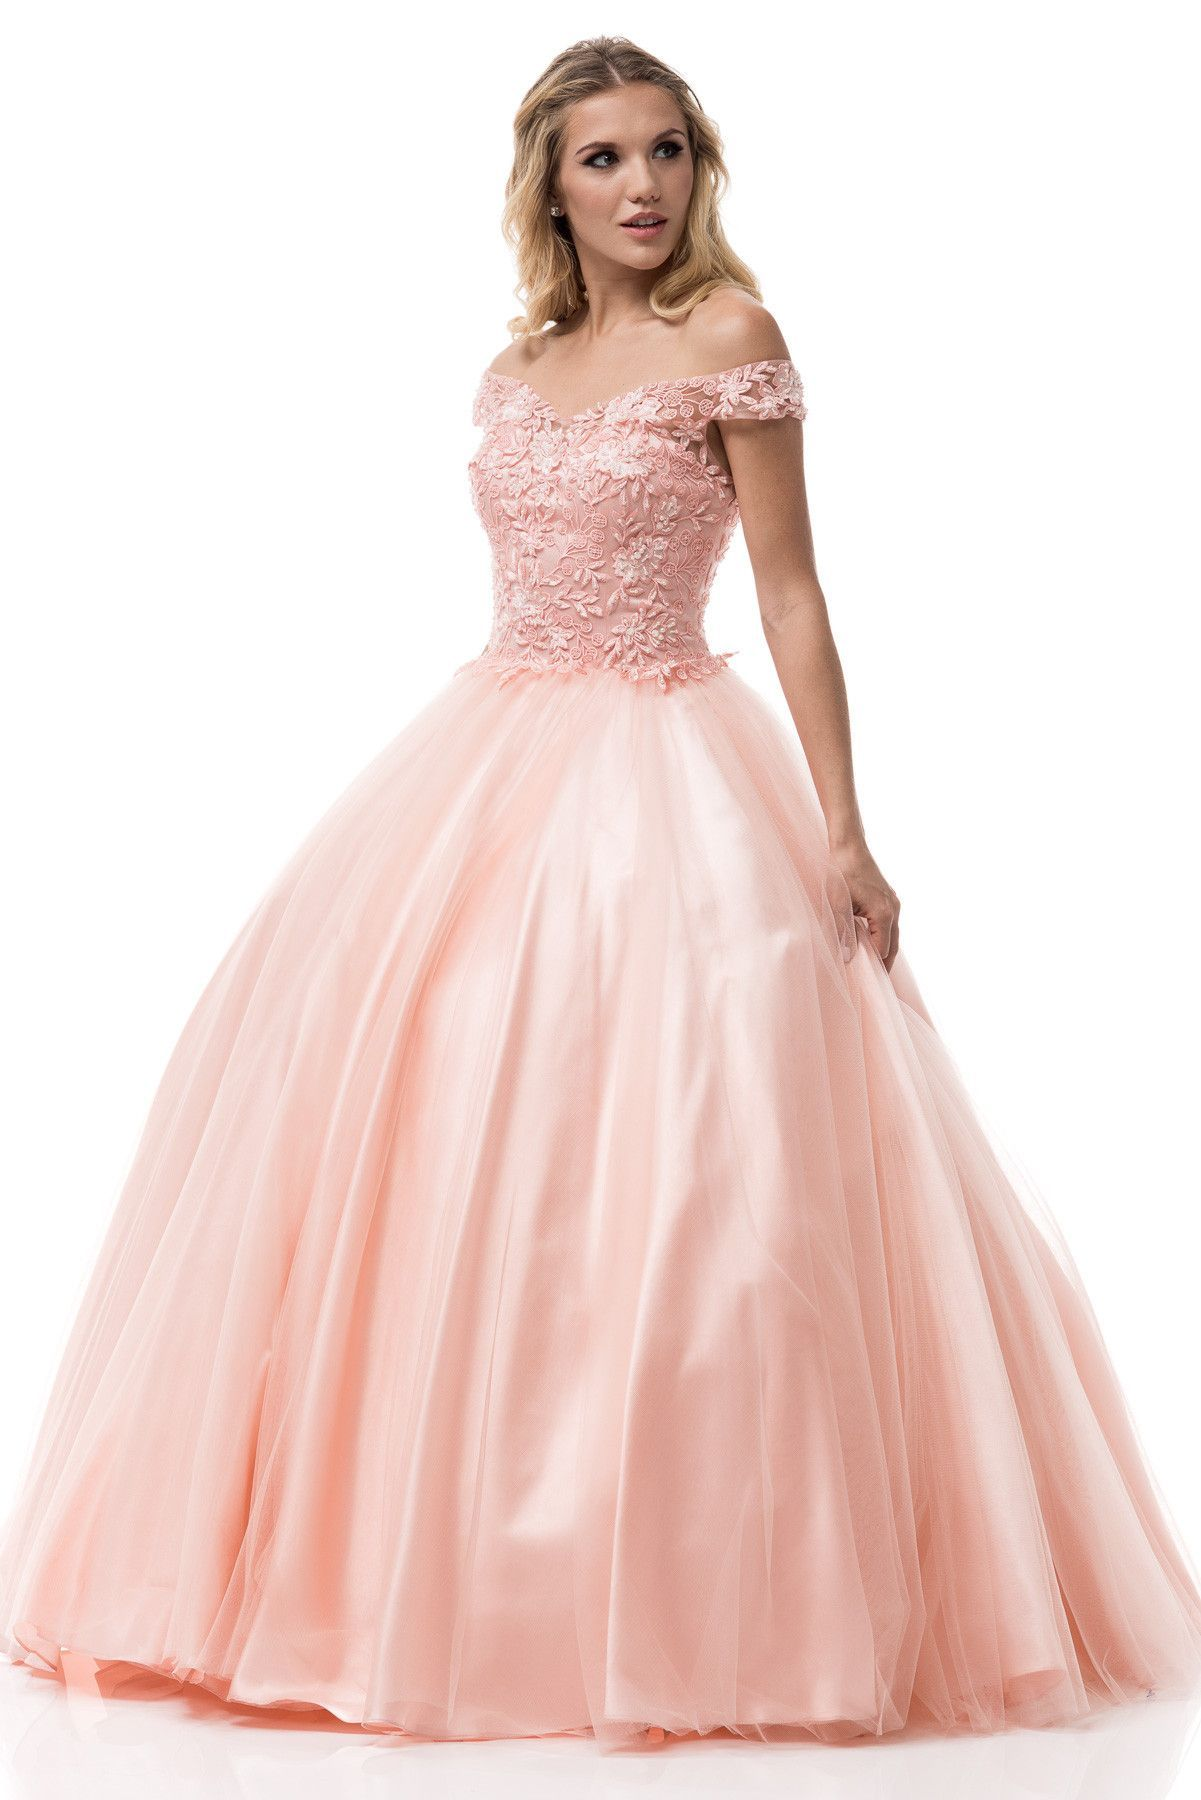 Off the shoulders prom ball gown quinceanera dress bccc